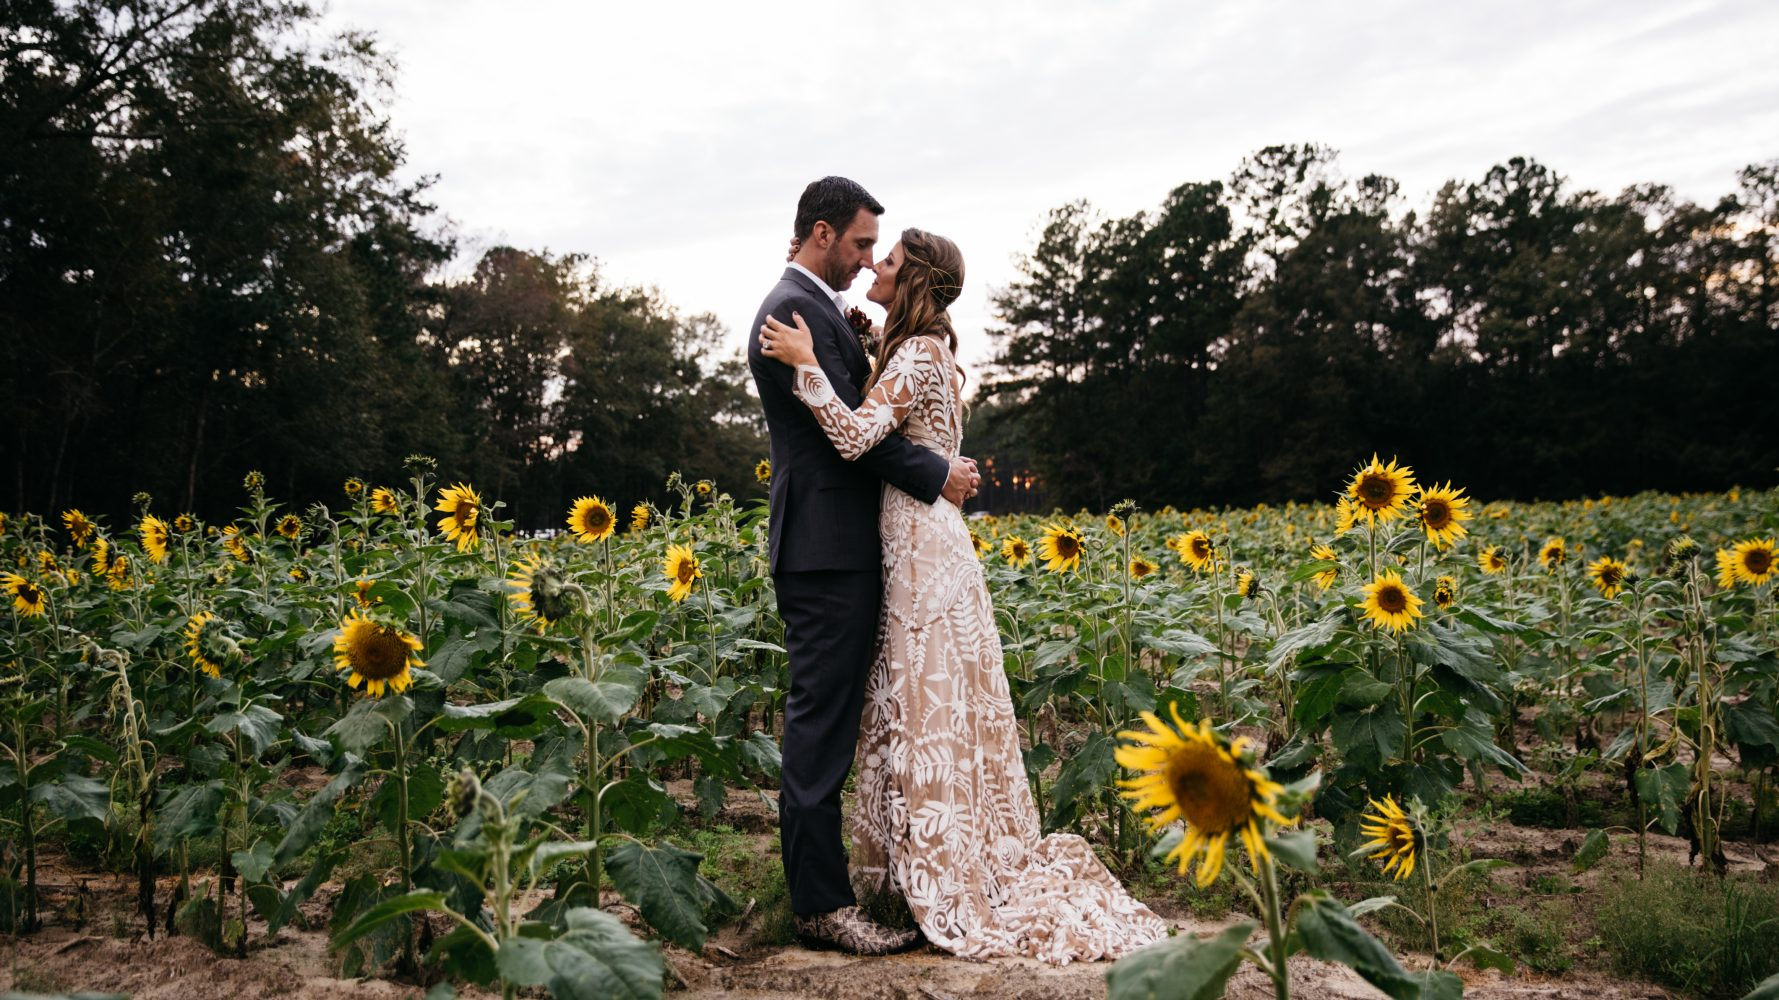 Kalen + Chris | Thomasville, Florida | Private Estate